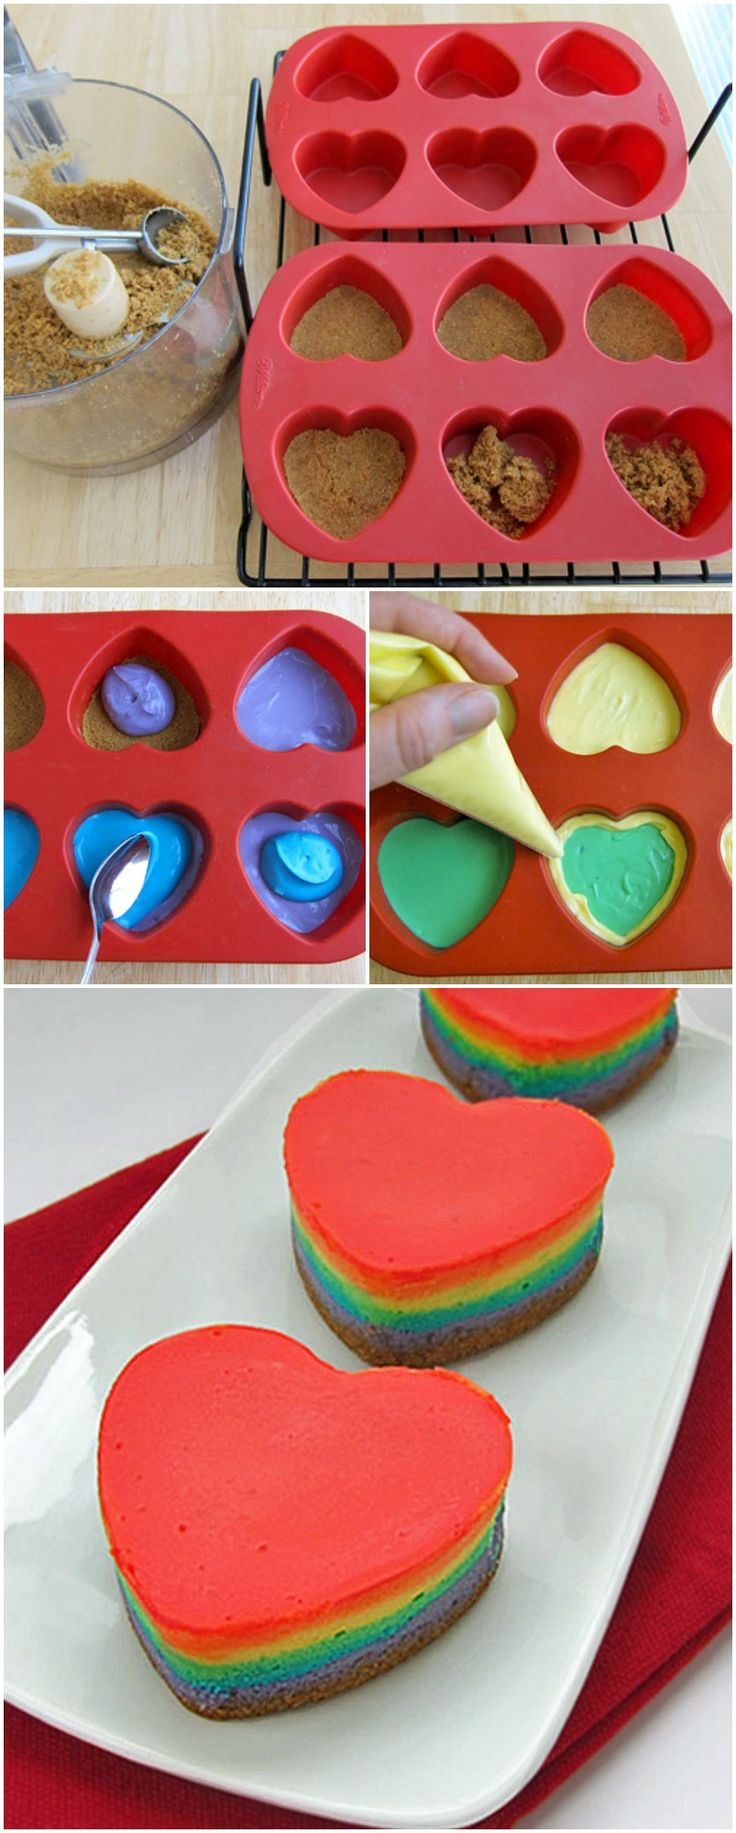 Rainbow Cheesecake Hearts...can make these gluten free ^^^^ HOLY MOTHER OF RAINBOWS AND FLUFFY UNICORNS